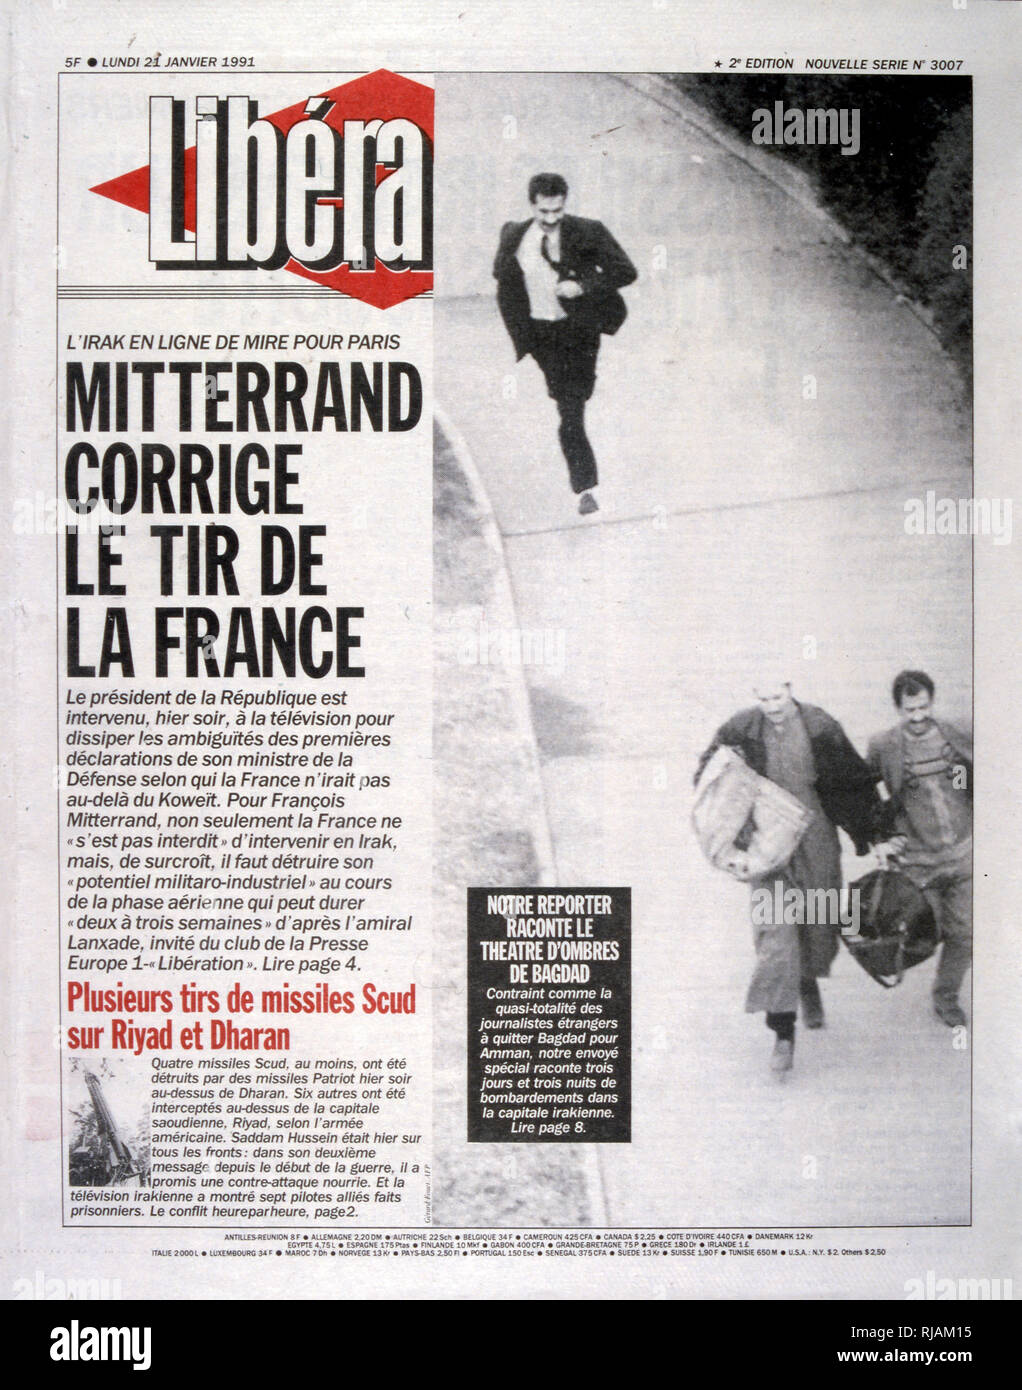 Headline in 'Liberation' a French newspaper, 21st January 1991, concerning French involvement in the Gulf War (2 August 1990 - 28 February 1991). codenamed Operation Desert Shield and Operation Desert Storm, the war waged by coalition forces from 35 nations led by the United States against Iraq in response to Iraq's invasion and annexation of Kuwait. - Stock Image